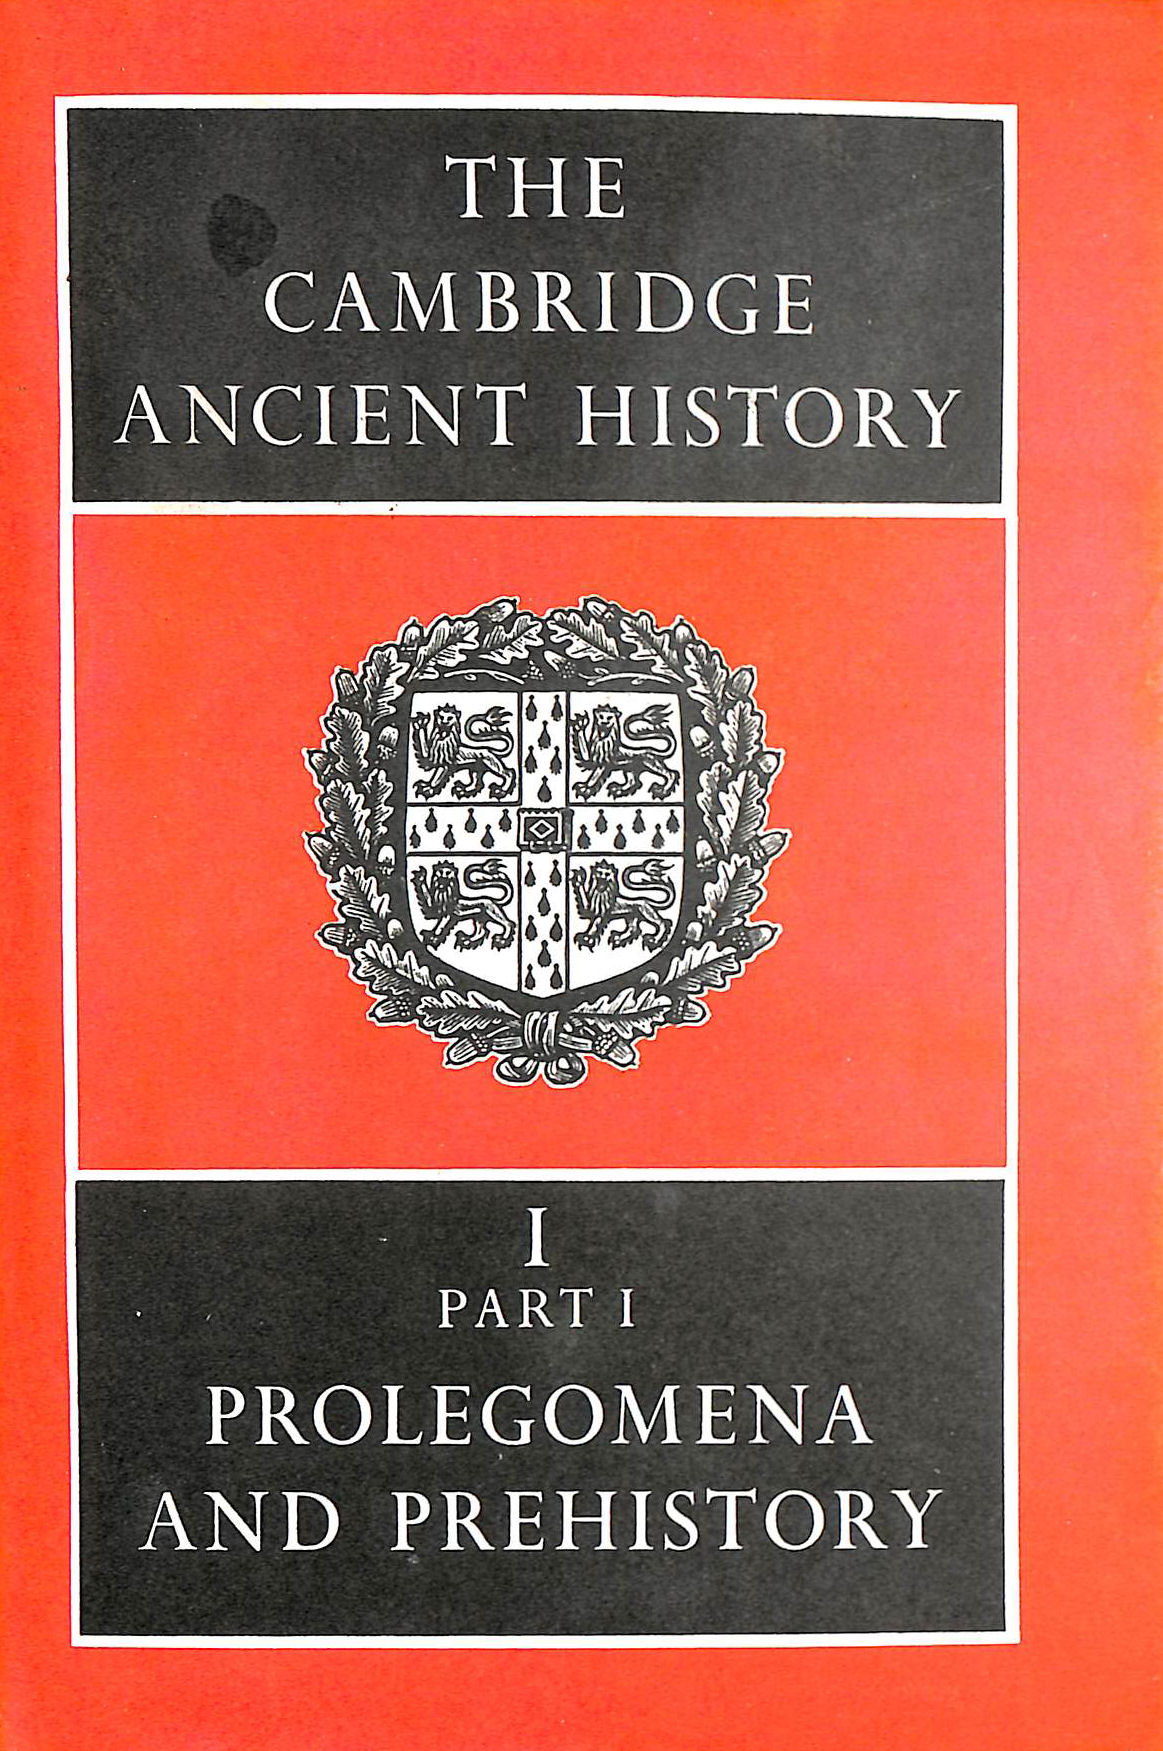 Image for The Cambridge Ancient History Volume 1, Part 1: Prolegomena and Prehistory